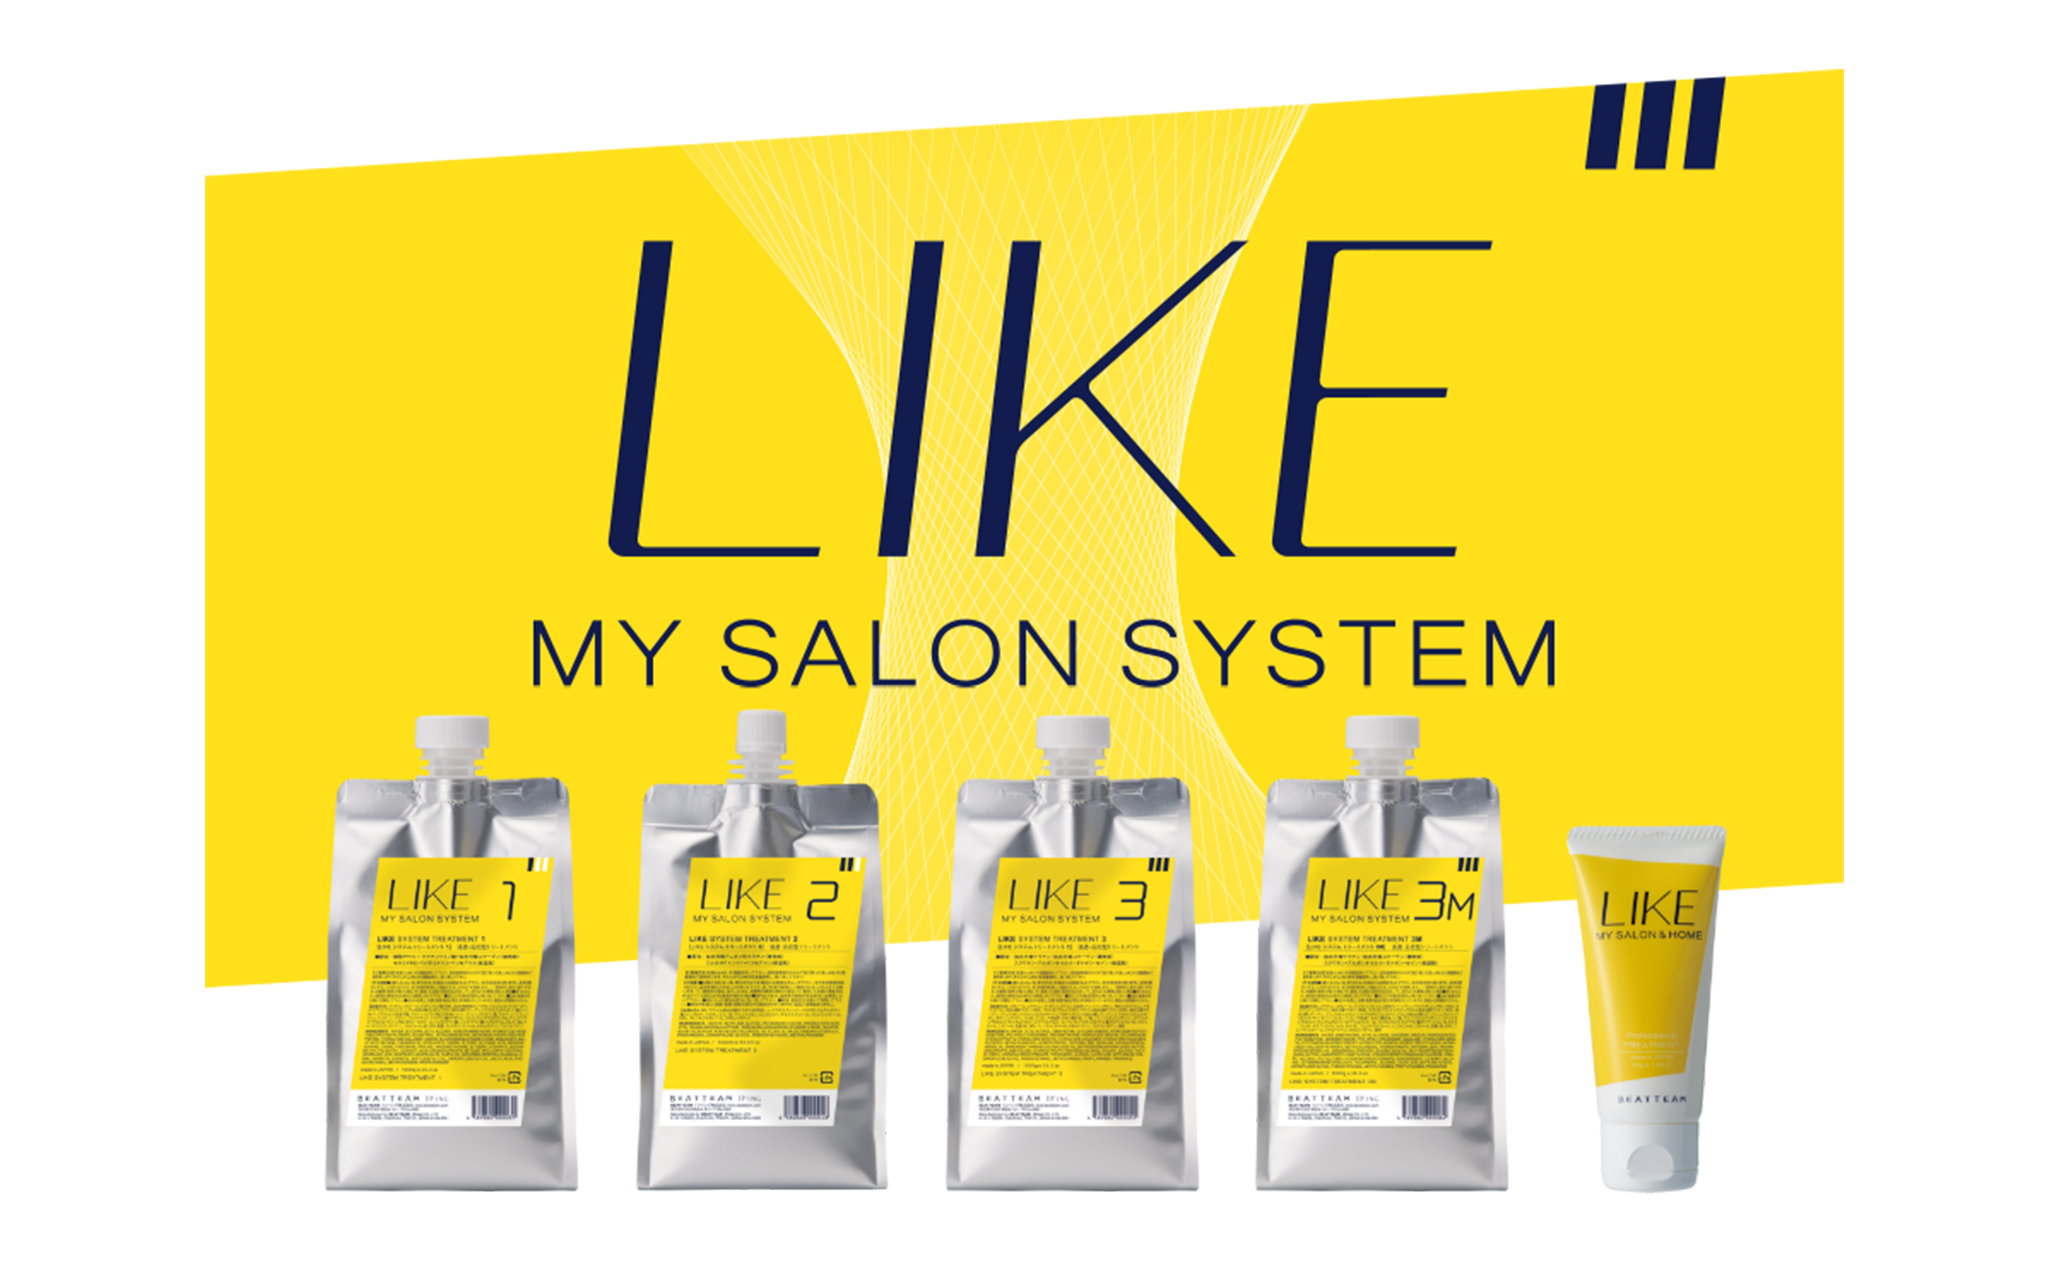 LIKE MY SALON SYSTEM